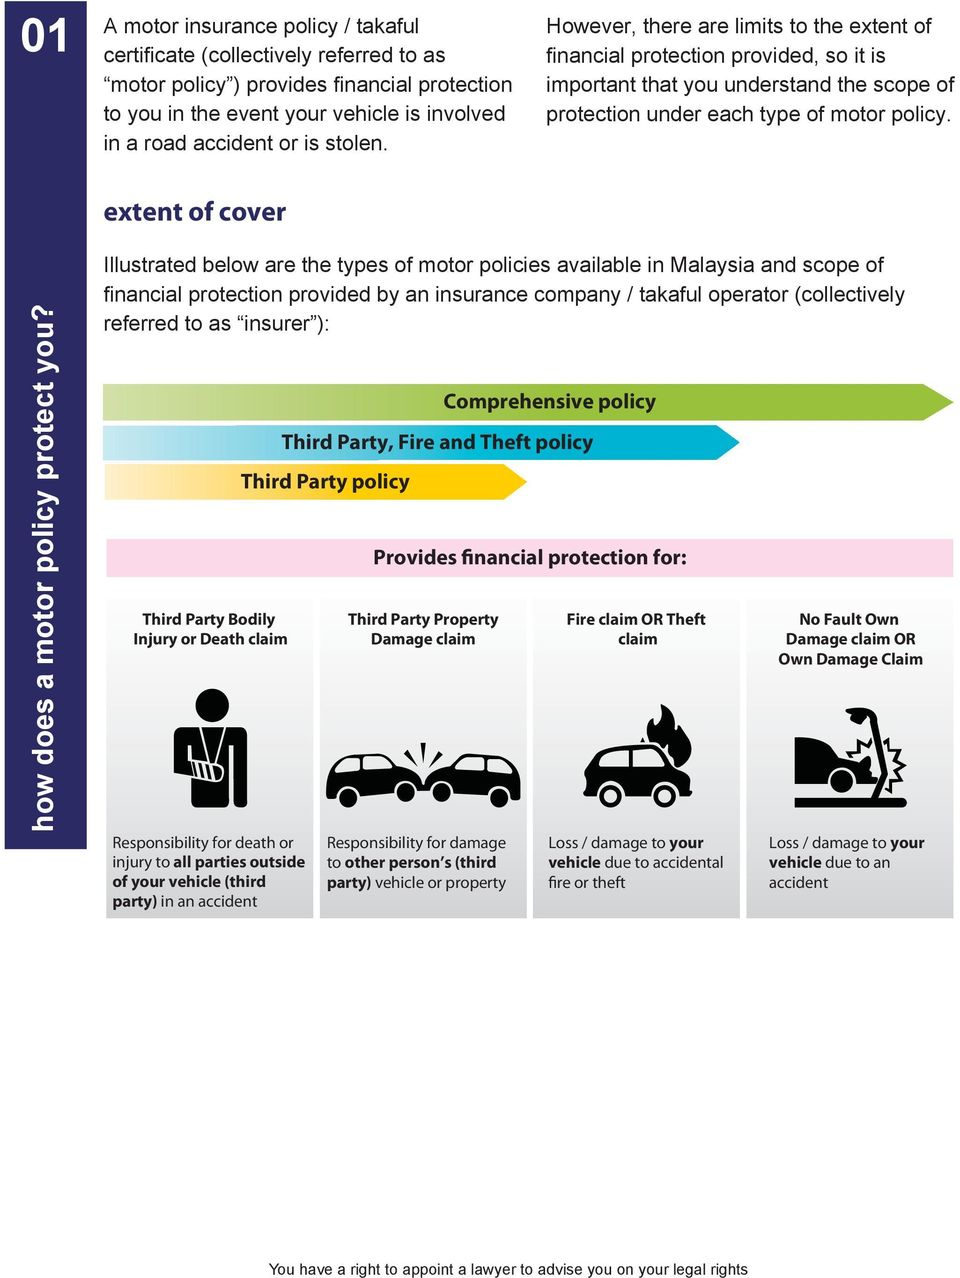 extent of cover how does a motor policy protect you?